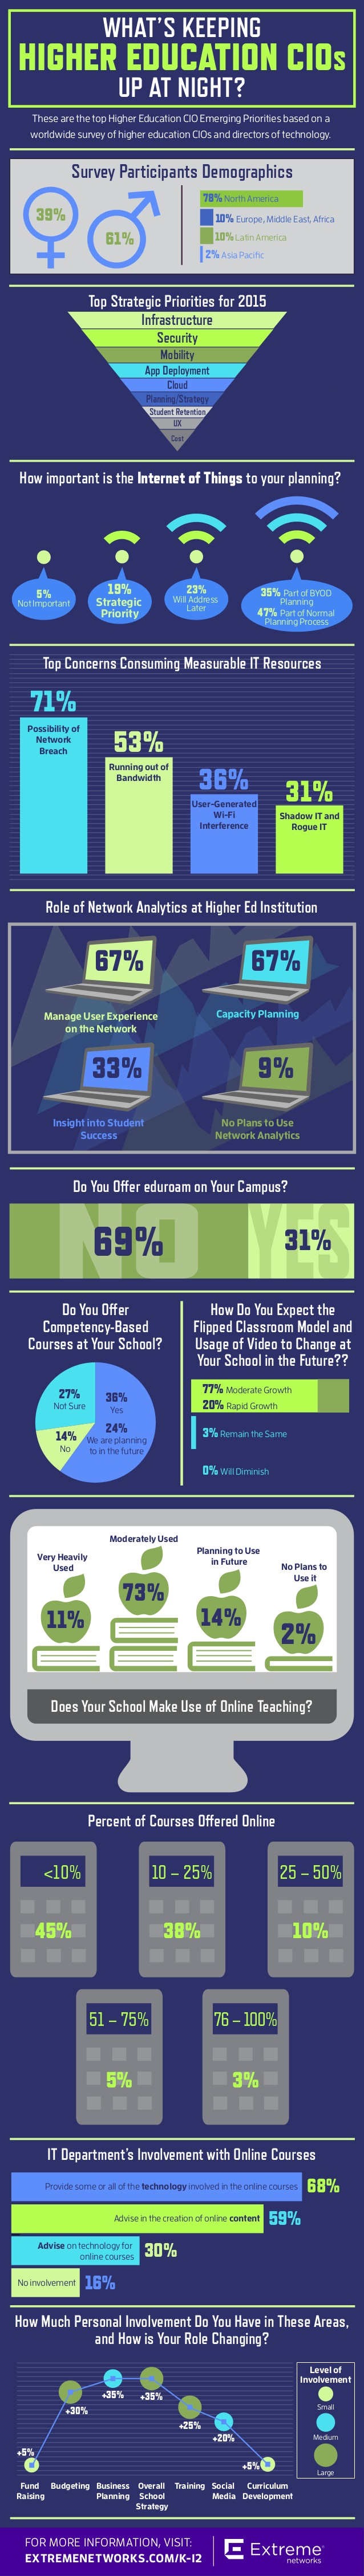 whats-keeping-higher-education-cios-up-at-night-1-638